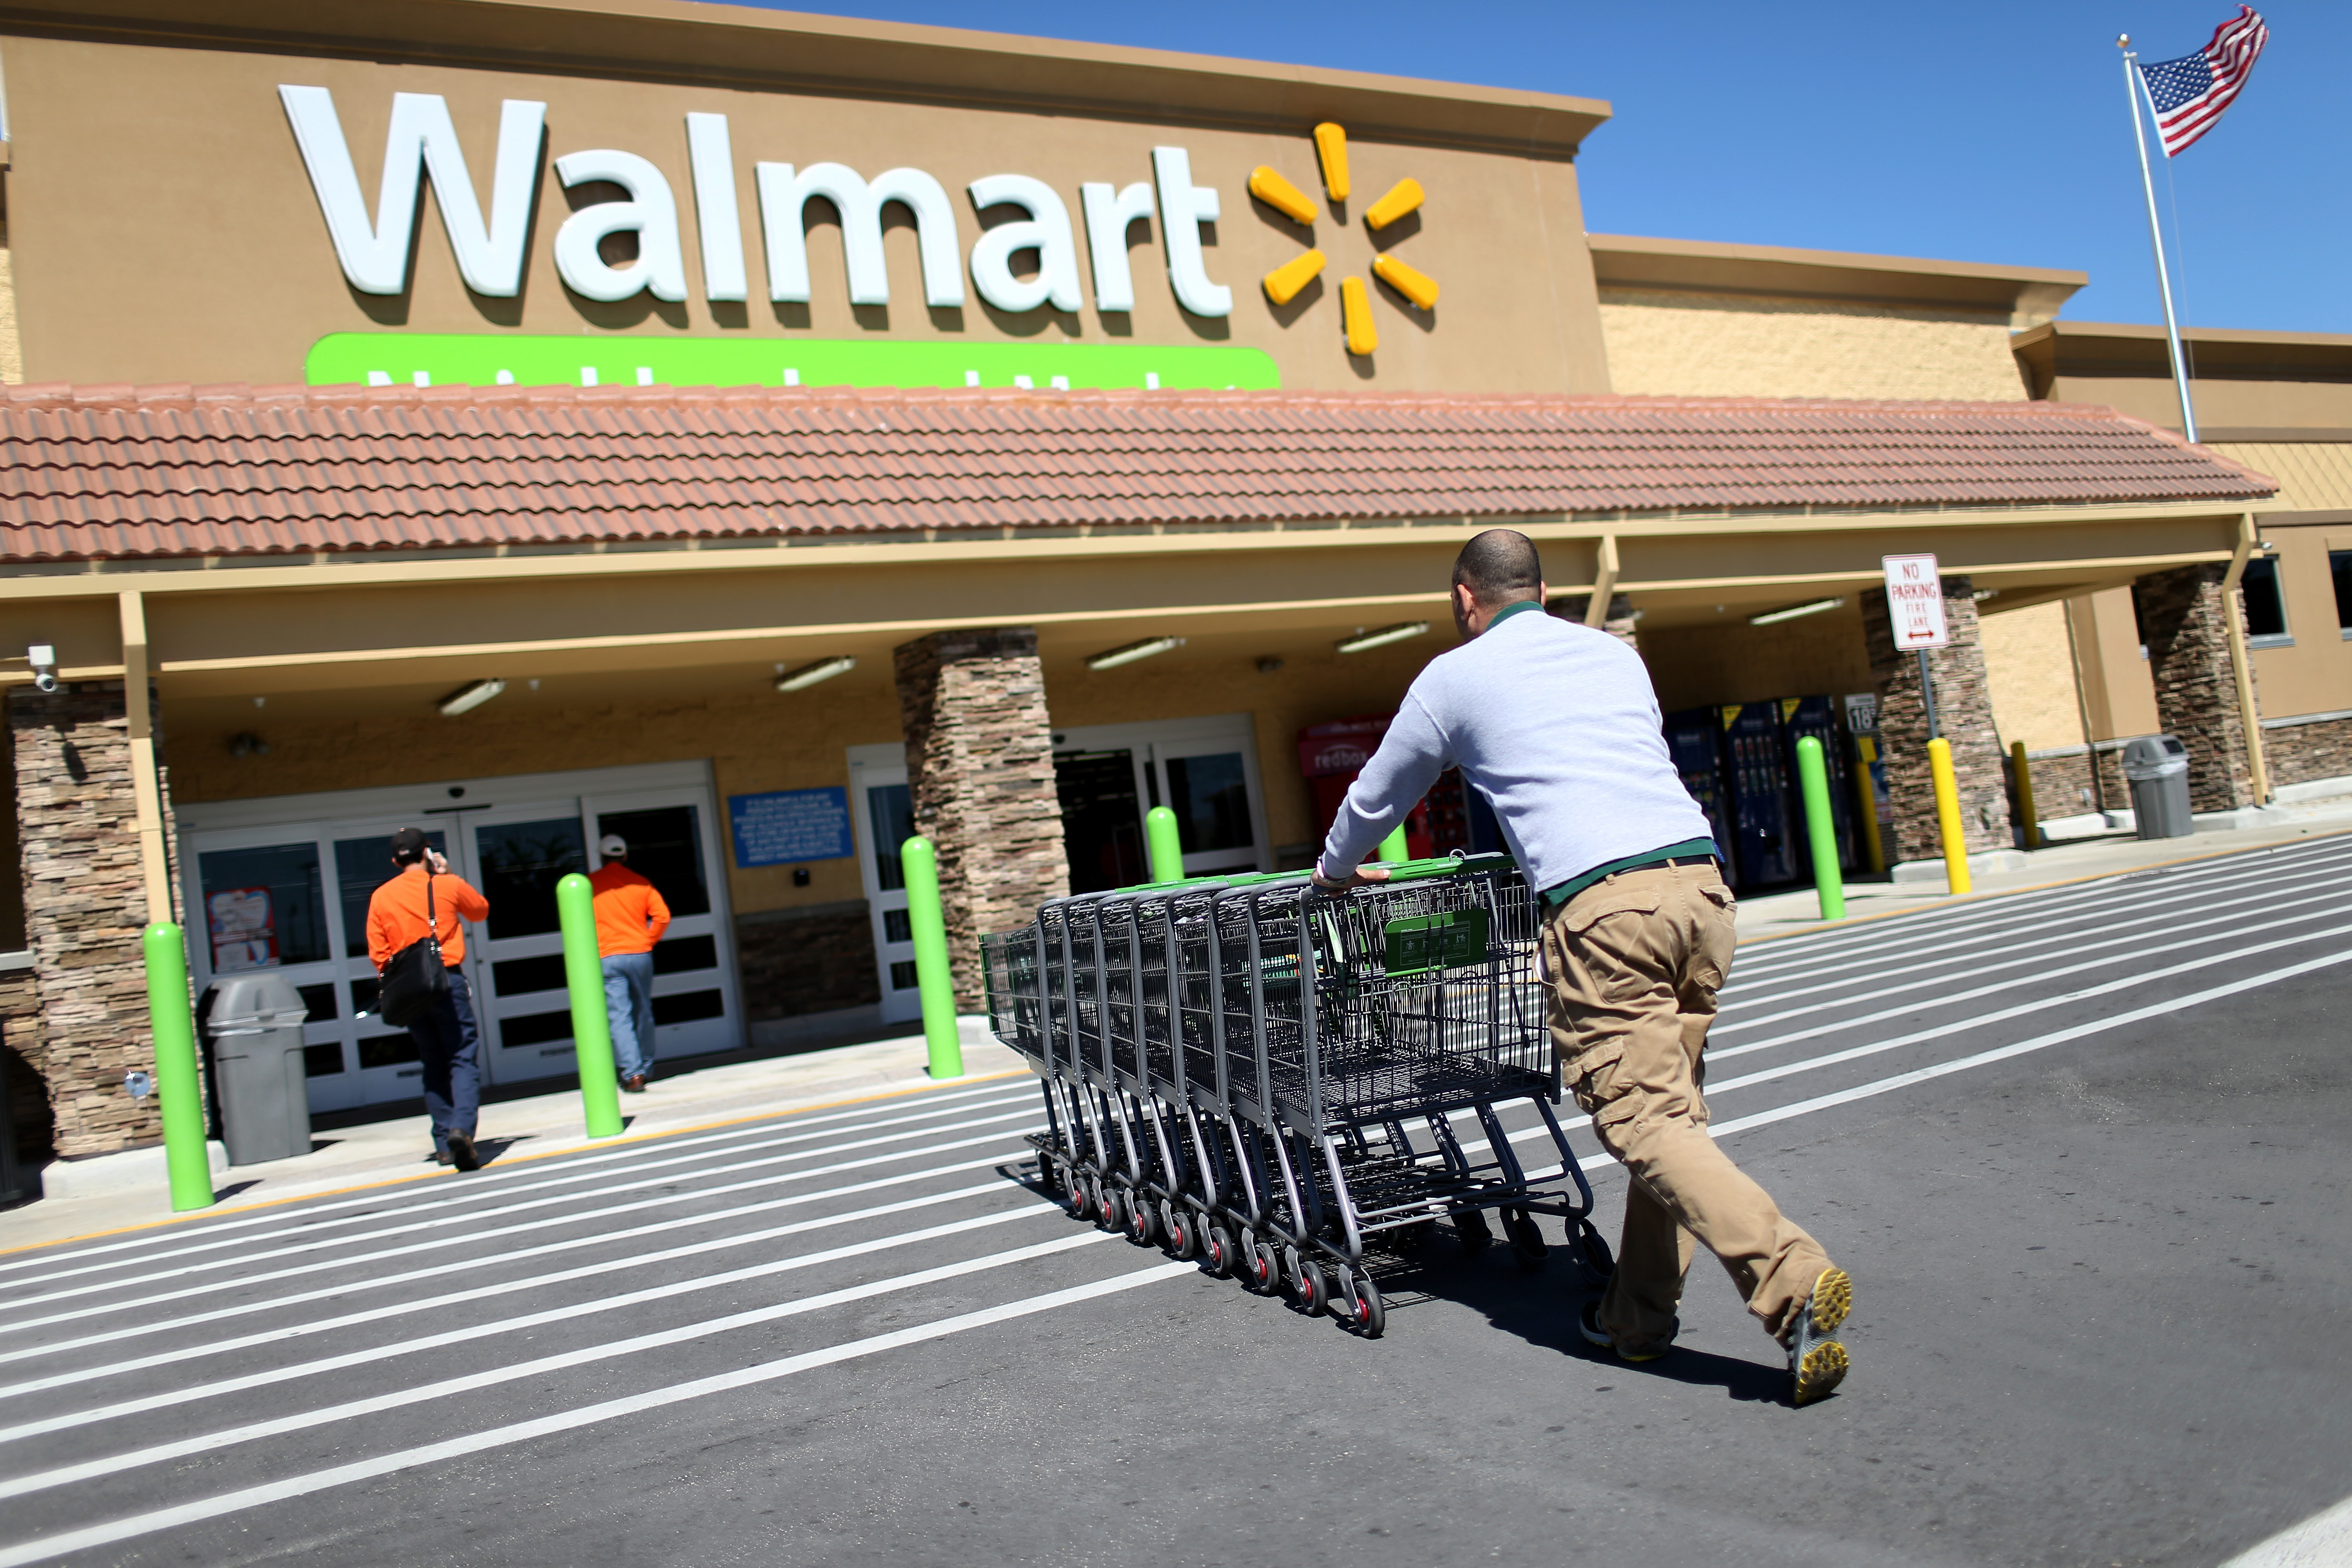 A Walmart employee pushes grocery carts at a Walmart store on February 19, 2015 in Miami, Florida.